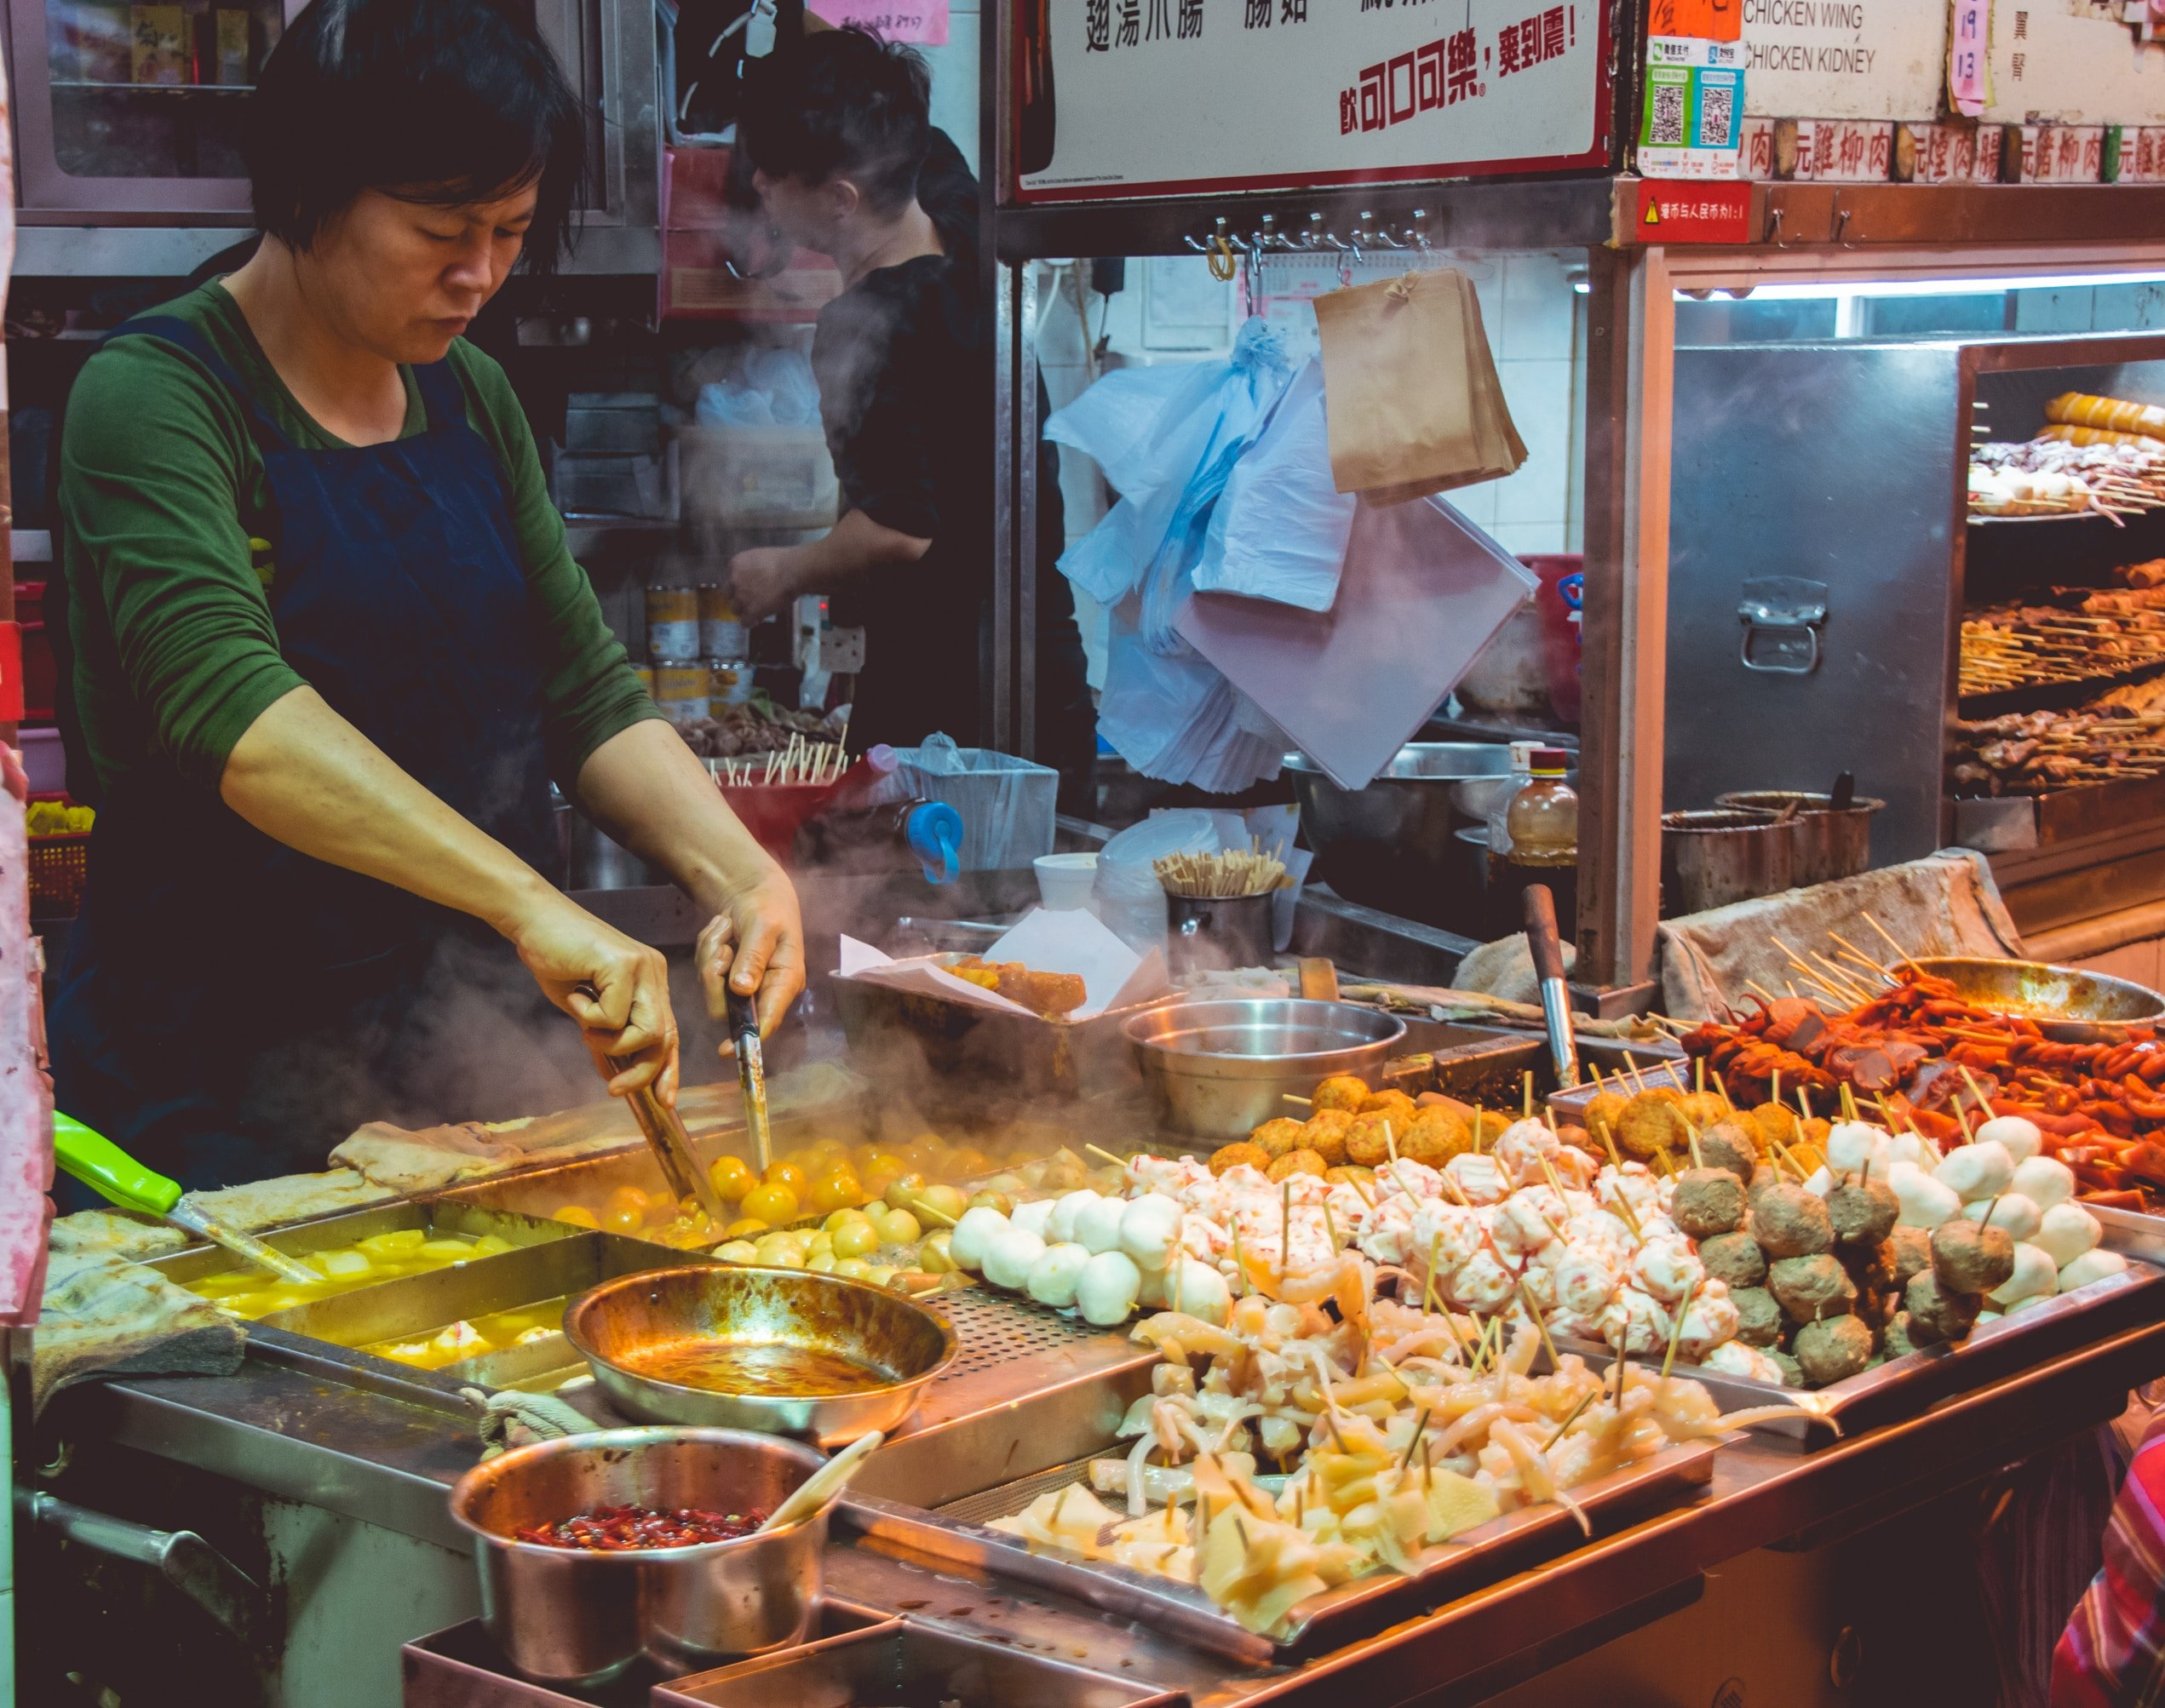 Asian street food vendors. Tim & Ness have a goal to keep our oceans pristine. Photo by Dylan Alcock on Unsplash